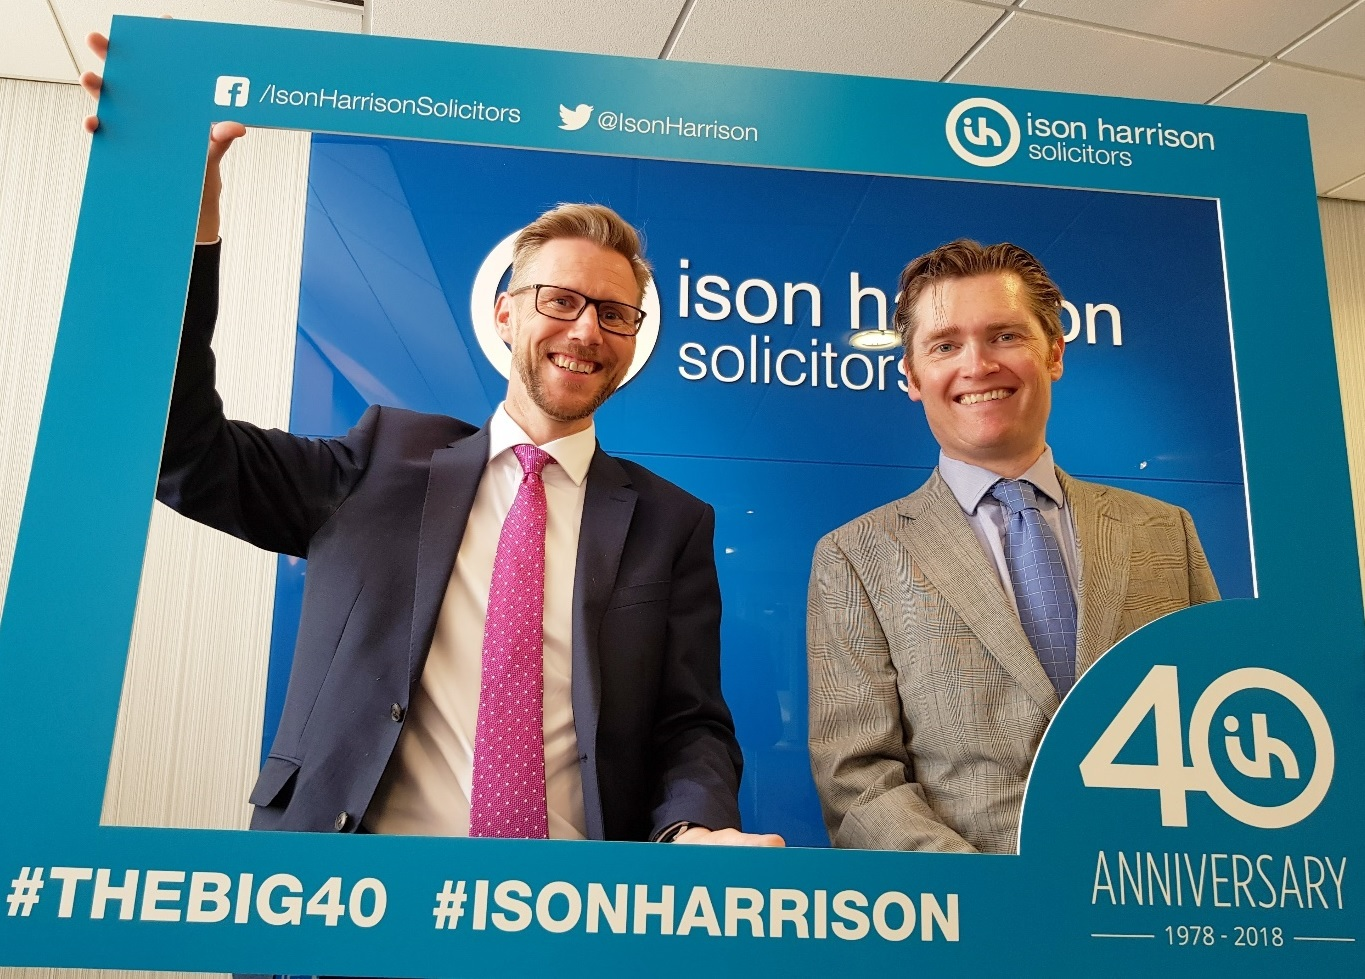 Ison Harrison – from left to right – Jonathan Wearing (Managing Partner) and Dominic Mackenzie (Head of Wills and Probate)